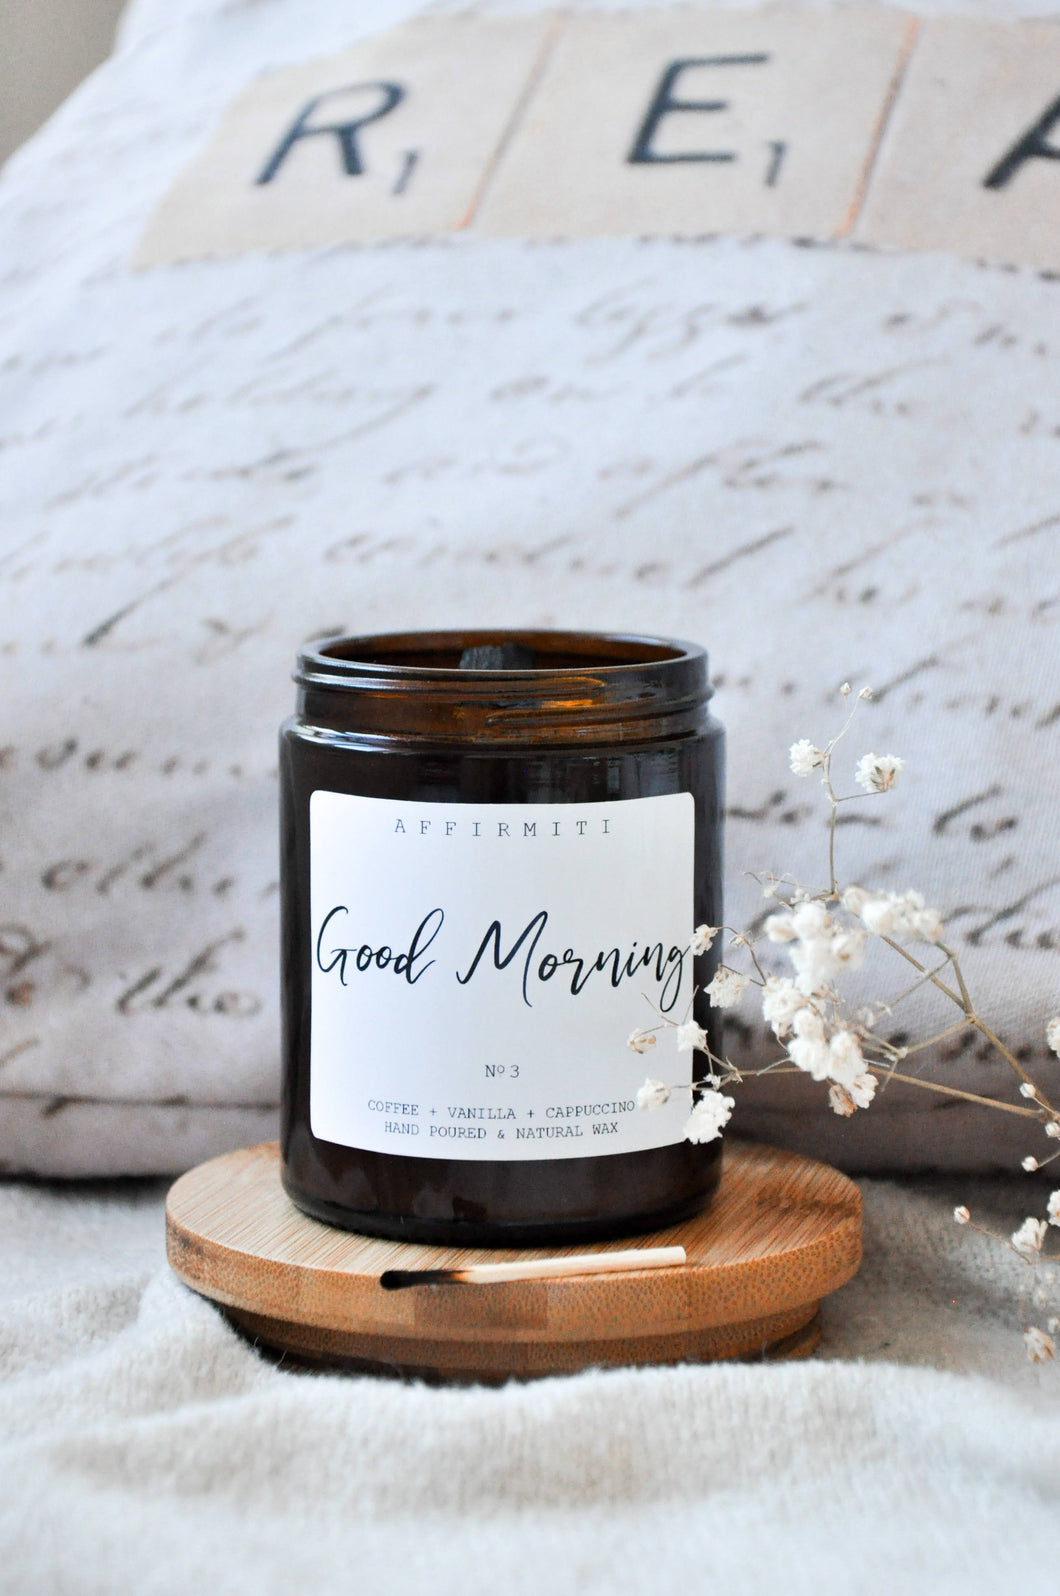 Good Morning Premium Wood Wick Candle